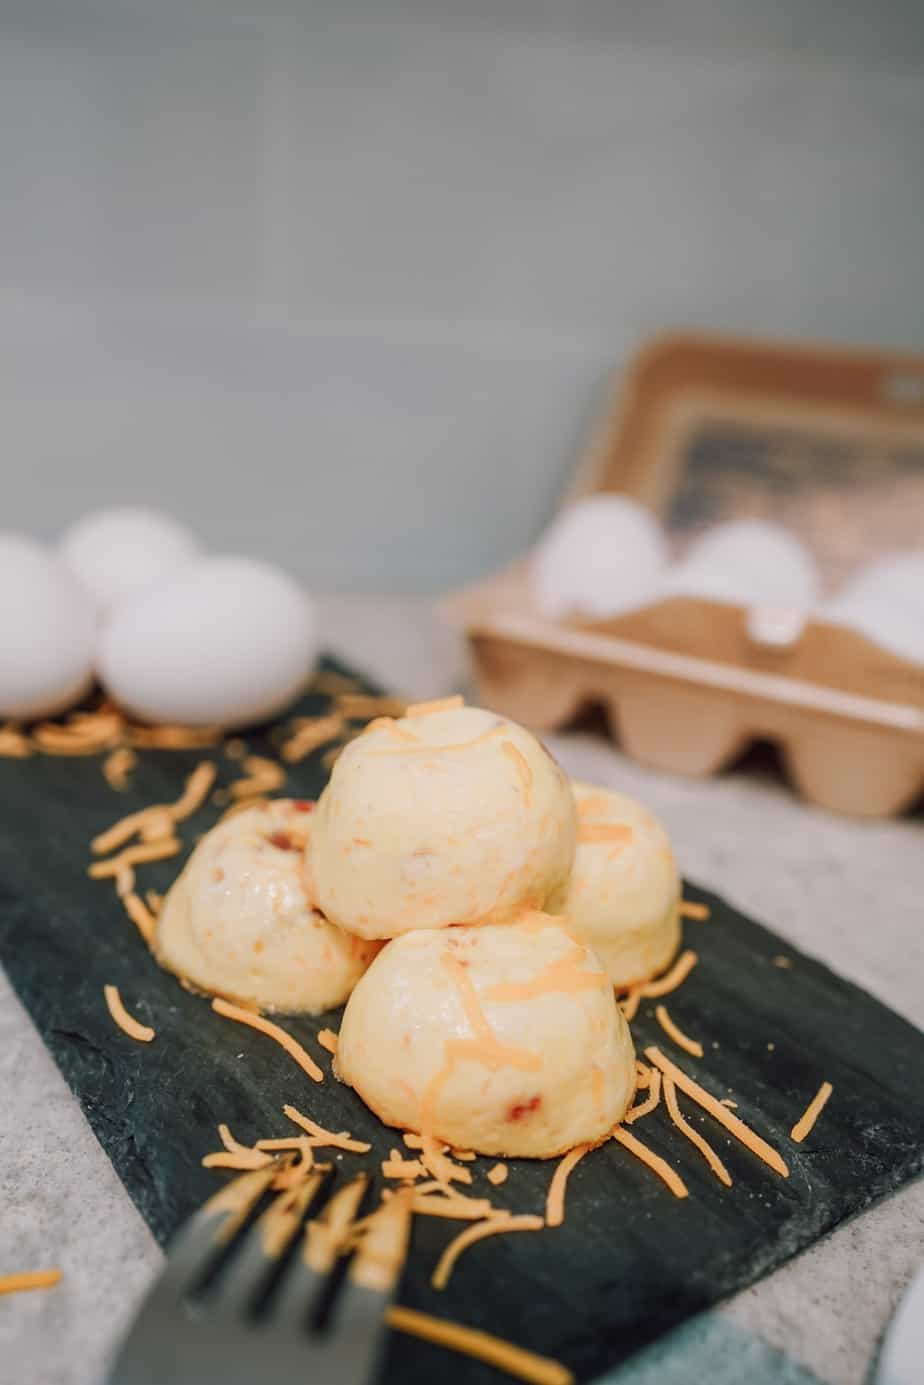 eggs, Egg Bites, ninja foodi egg, ninja foodi eggs, ninja foodi egg bites, ninja foodi breakfast, ninja foodi brunch, instant pot egg, instant pot eggs, instant pot egg bites, instant pot breakfast, instant pot brunch, instant pot egg bites, breakfast, brunch, egg, eggs, egg bites,